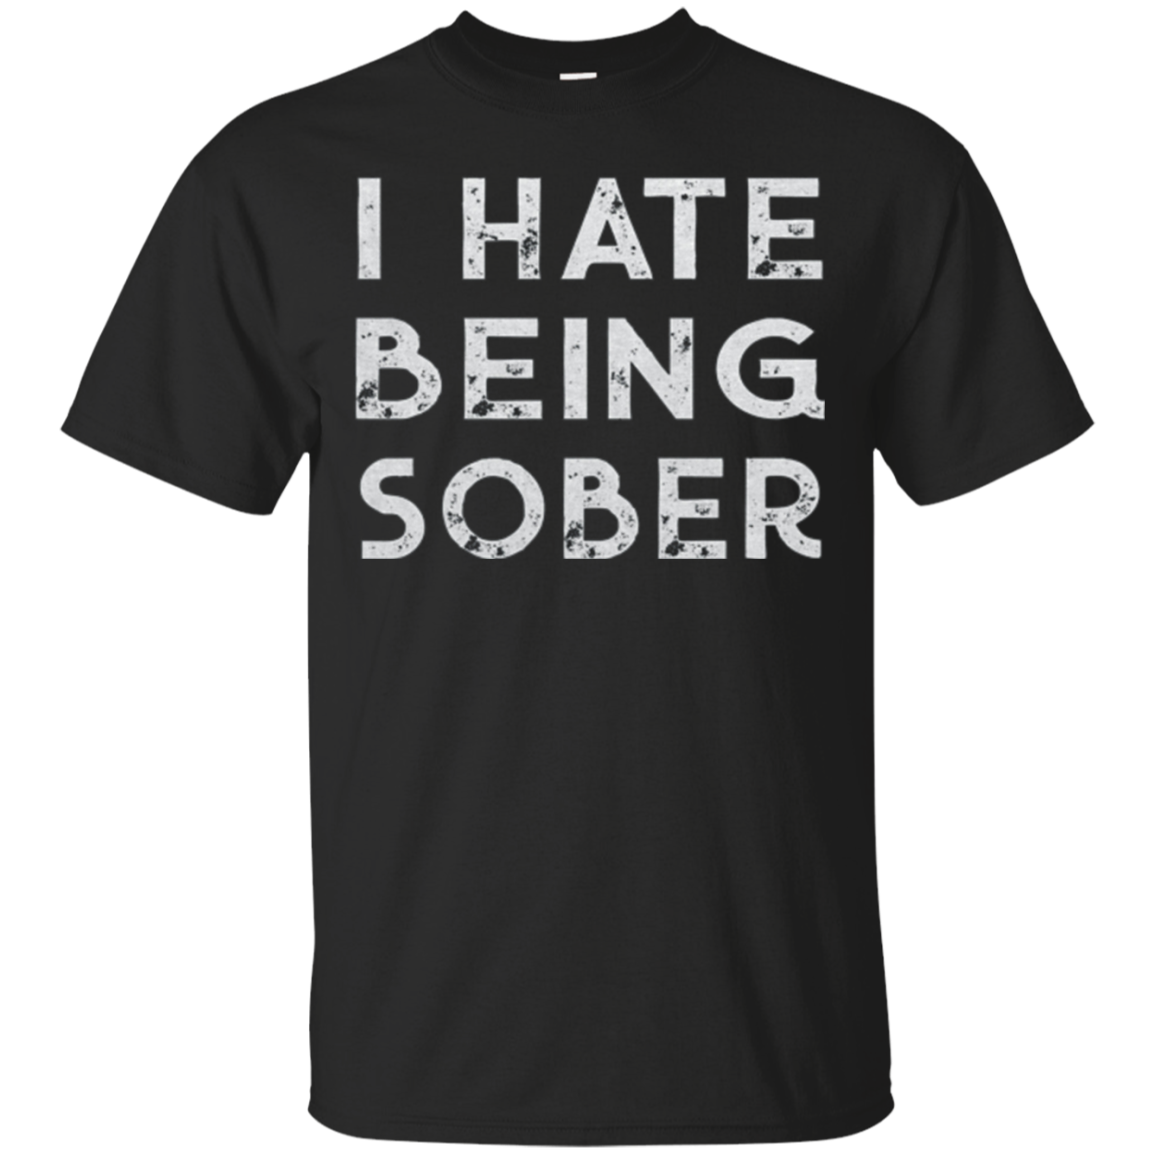 I hate being sober t-shirt